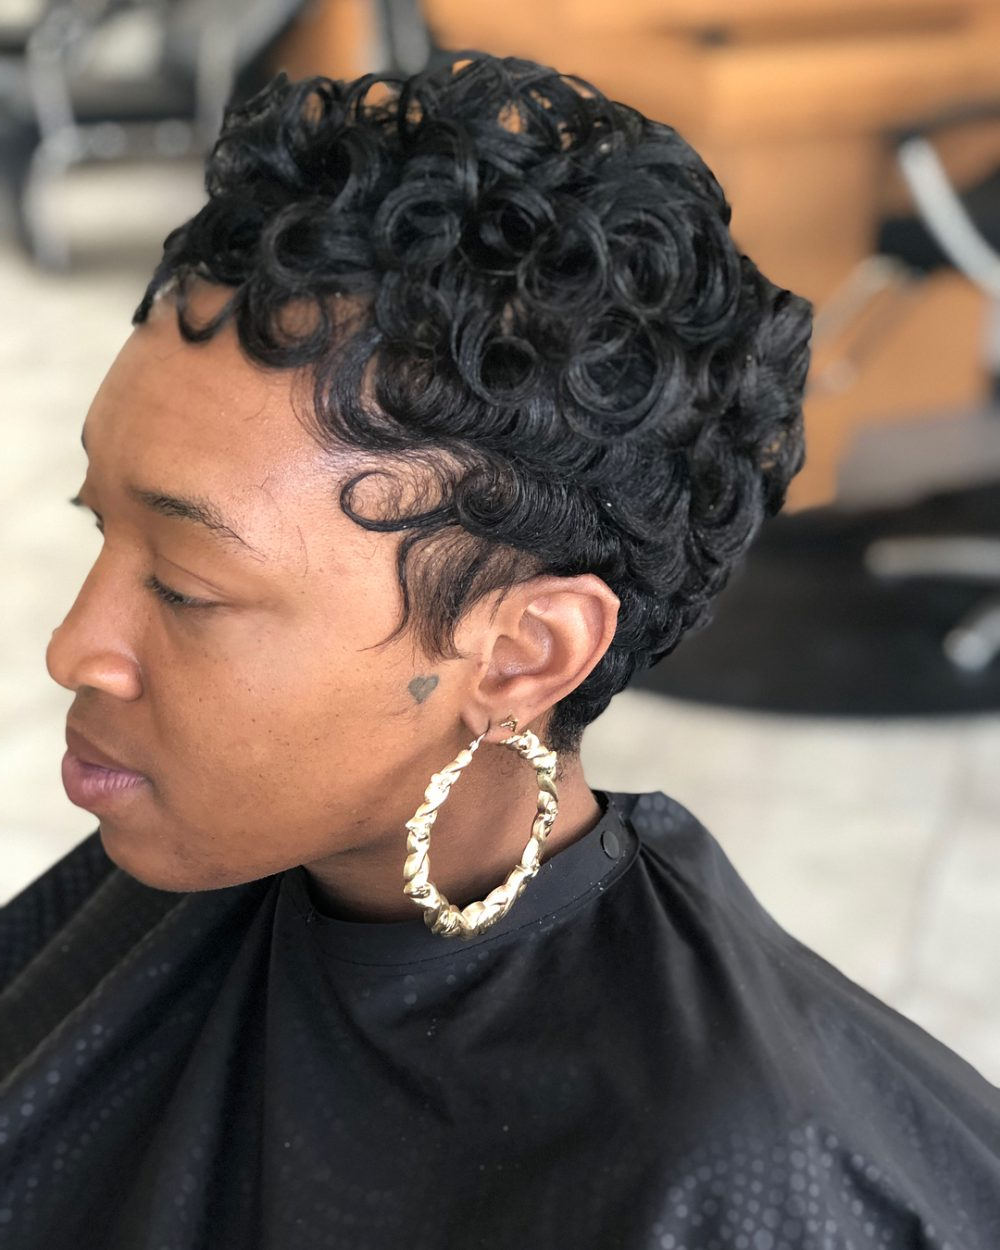 54 Easy Short Hairstyles For Black Women Throughout Short Hairstyles For Round Faces Black Hair (View 14 of 25)